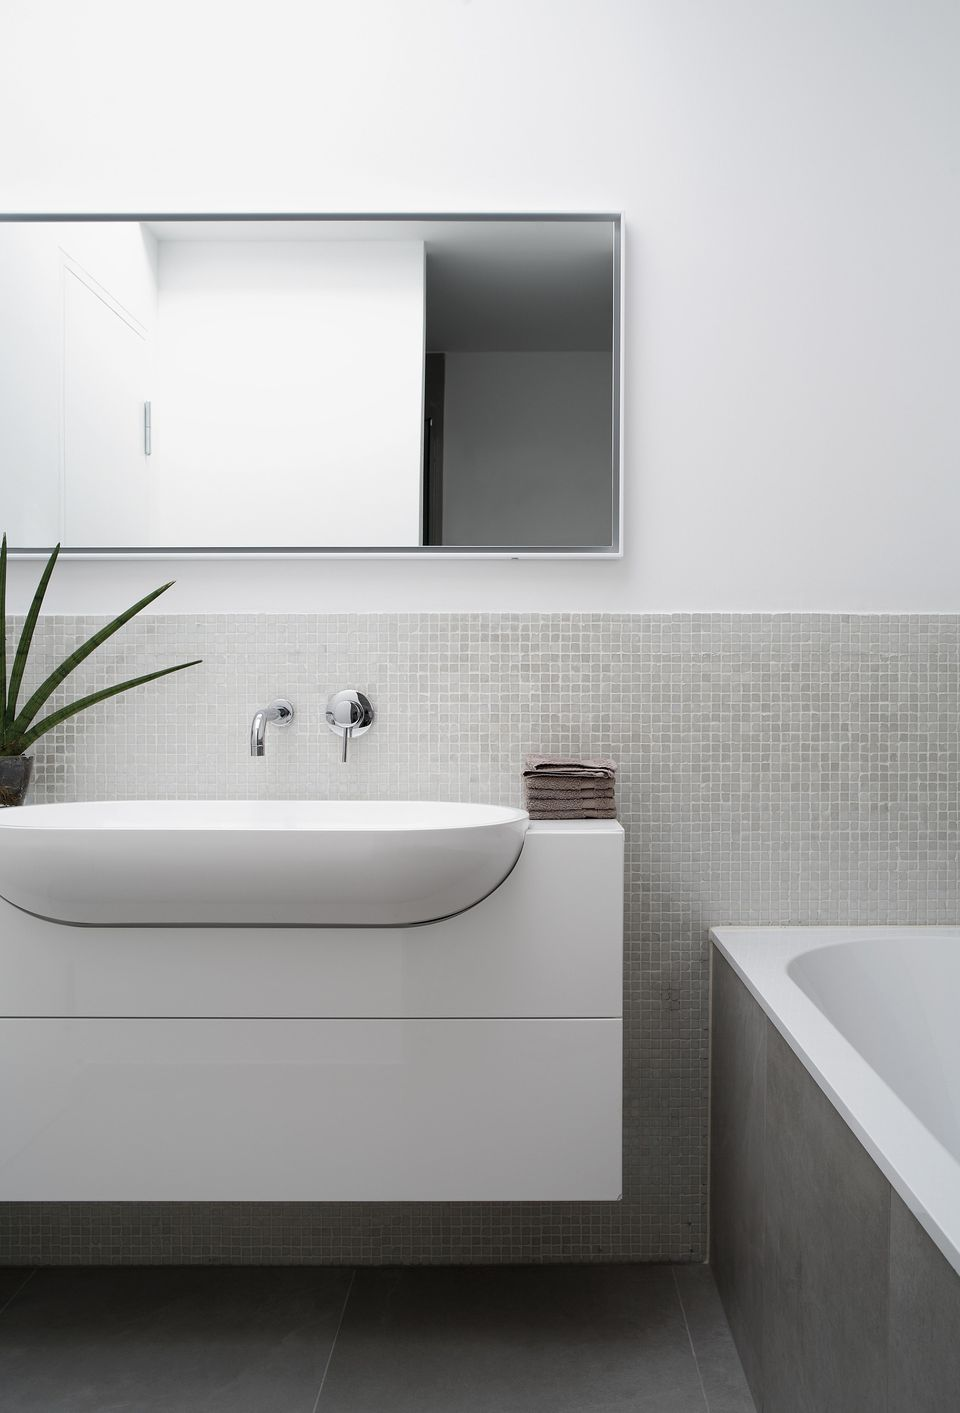 Ways To Cut Your Bathroom Renovation Costs - 5x8 bathroom remodel cost